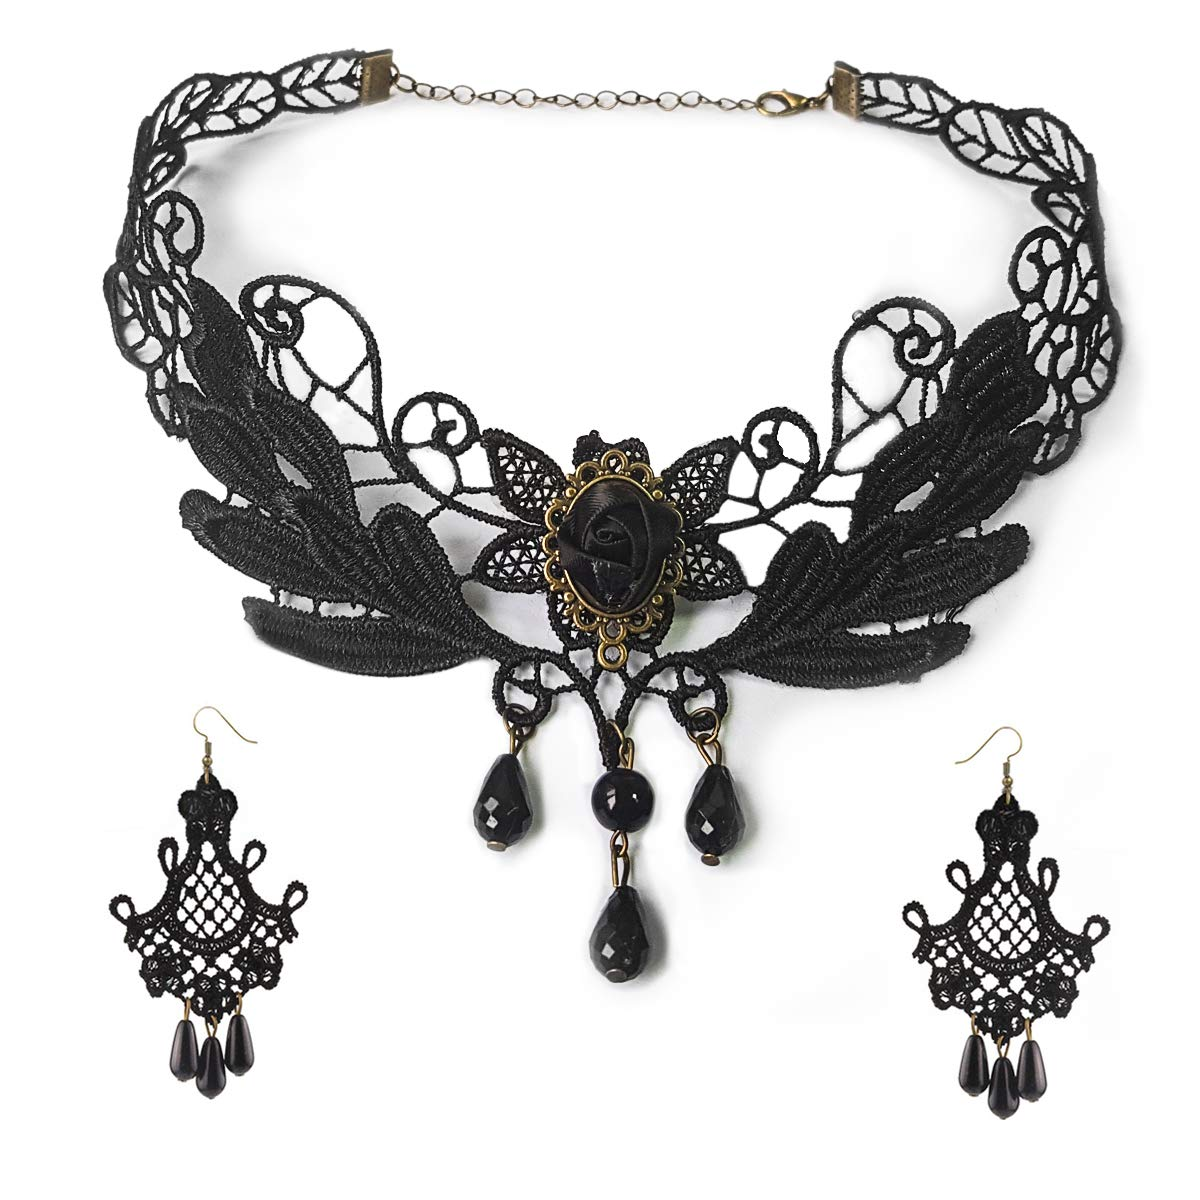 09df43e48620d Amazon.com: Black Lace Necklace Earrings Set - Gothic Lolita Pendant Choker  Clothing Accessories for Wedding Birthday Hallowen Christmas (Black1):  Jewelry